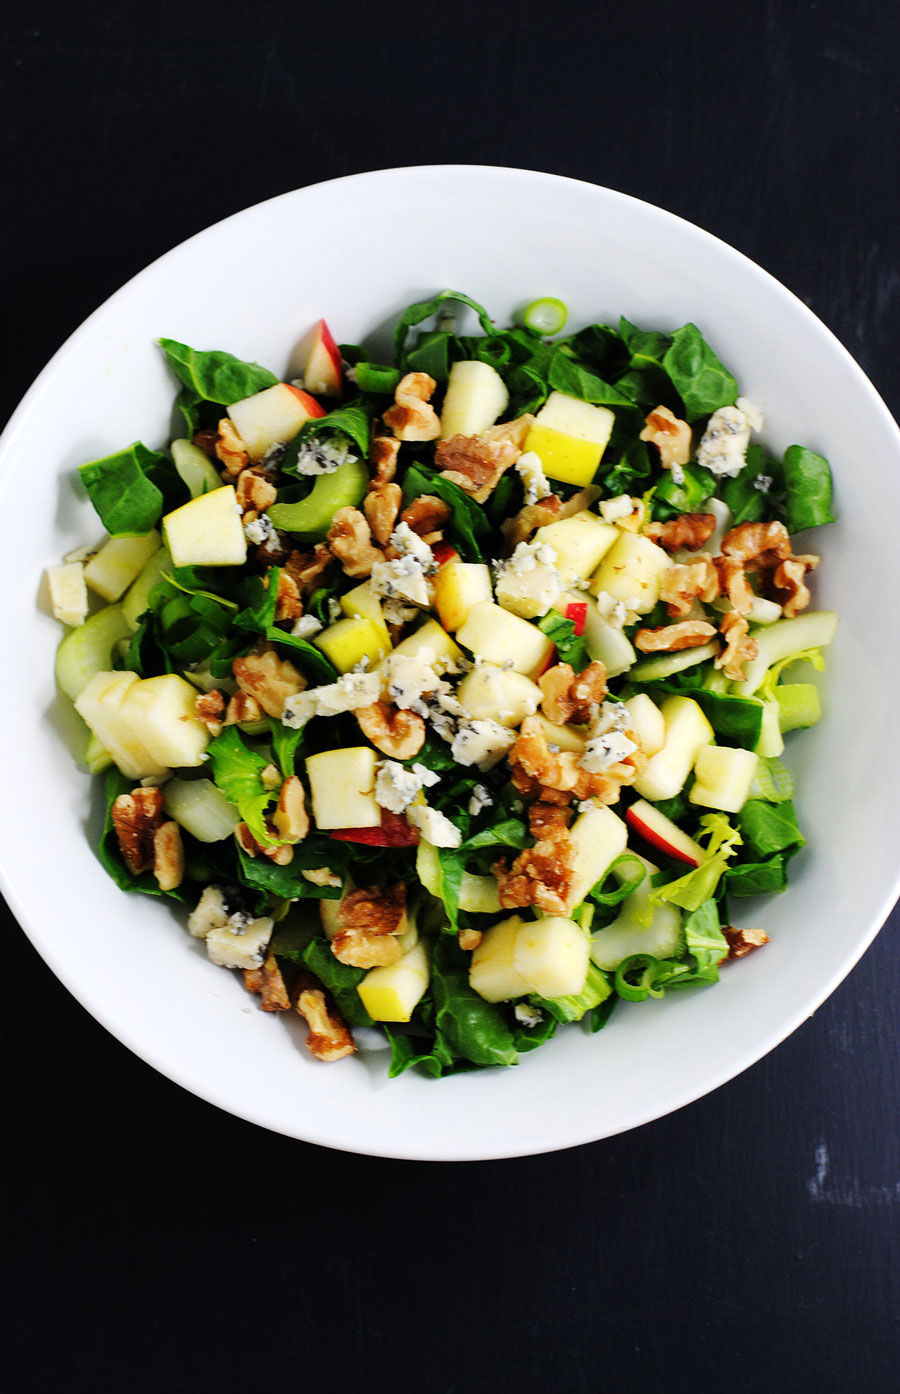 Chard Salad With Blue Cheese Walnuts And Apples White Plate Blank Slate